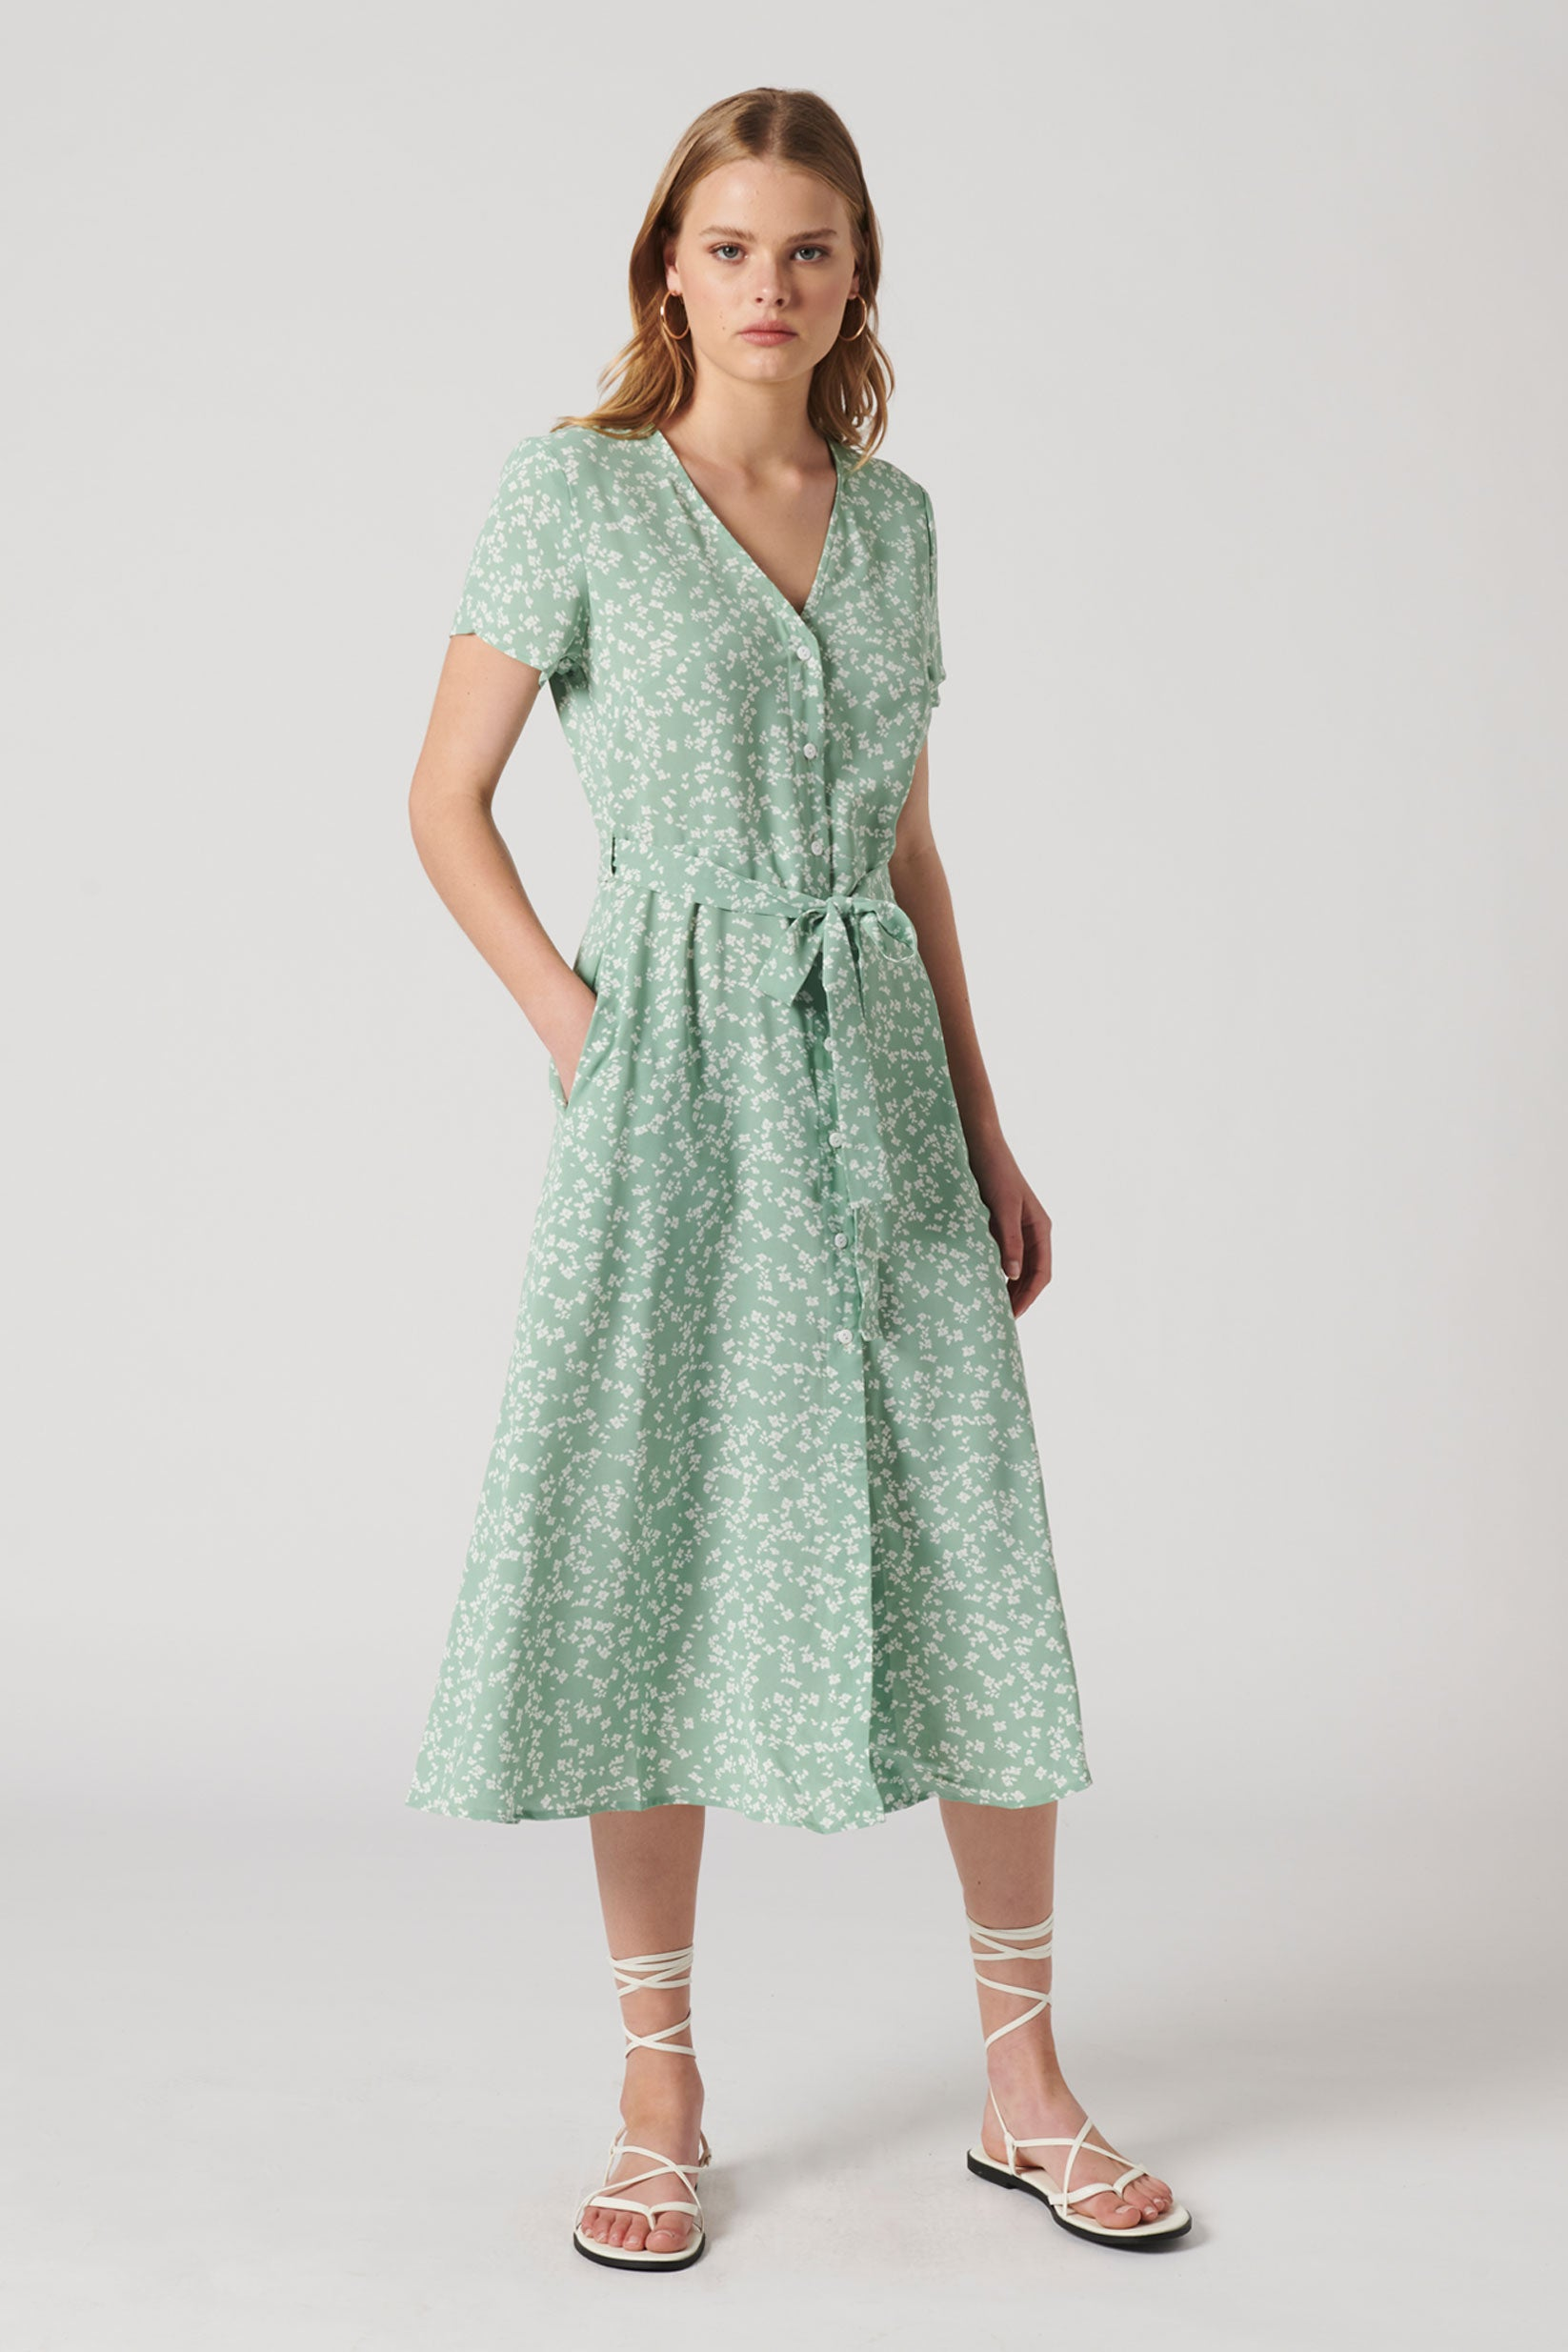 REMINISCENCE MIDI DRESS